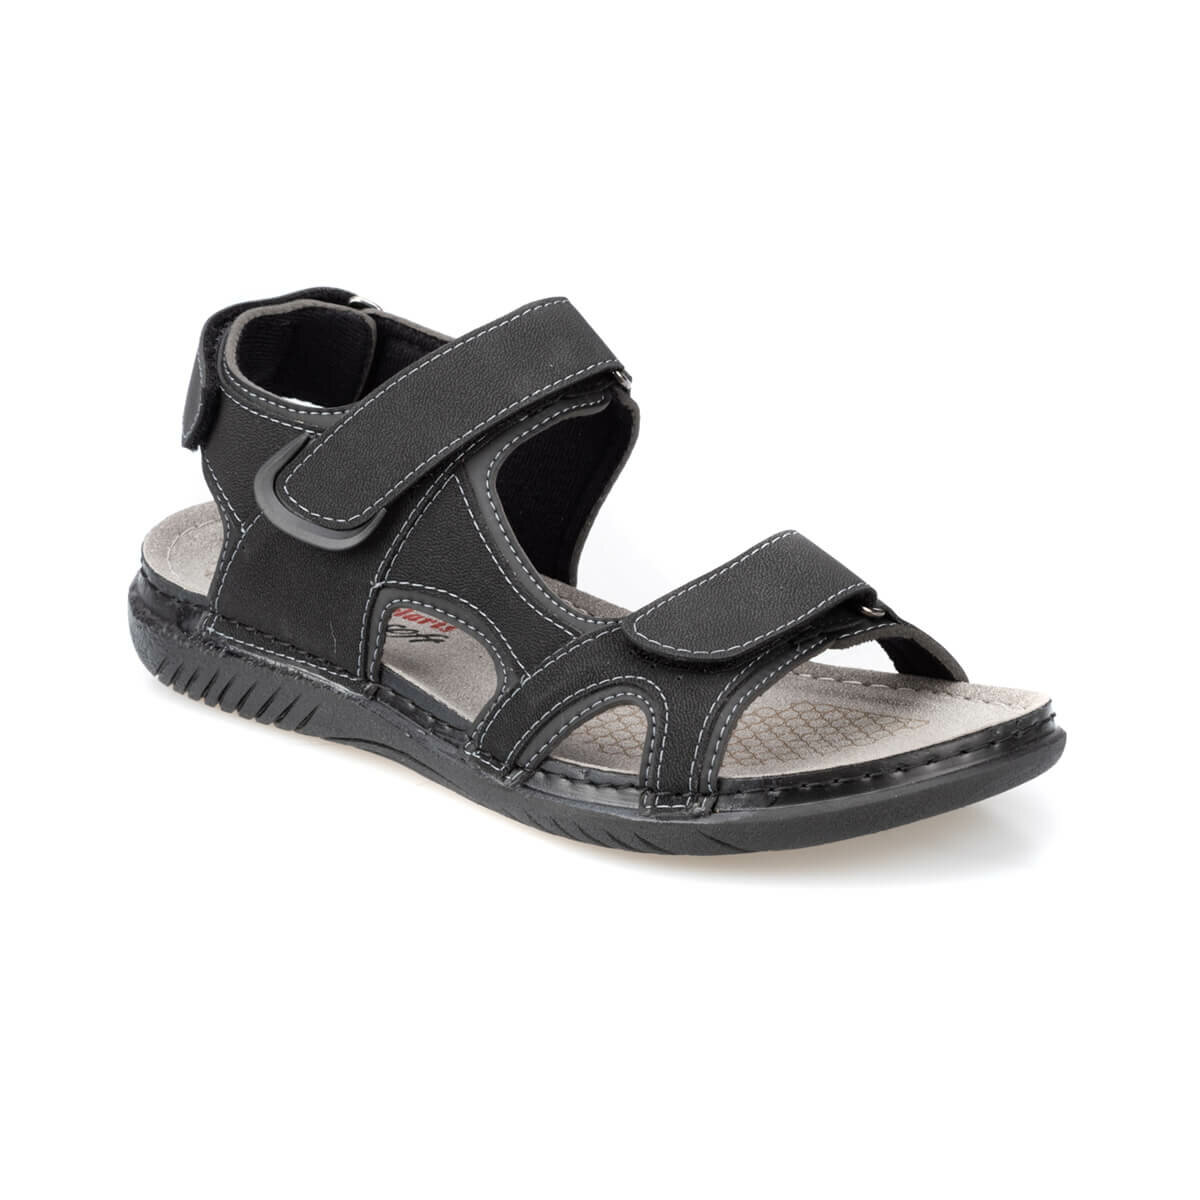 FLO 91.150579.M Black Male Sandals Polaris